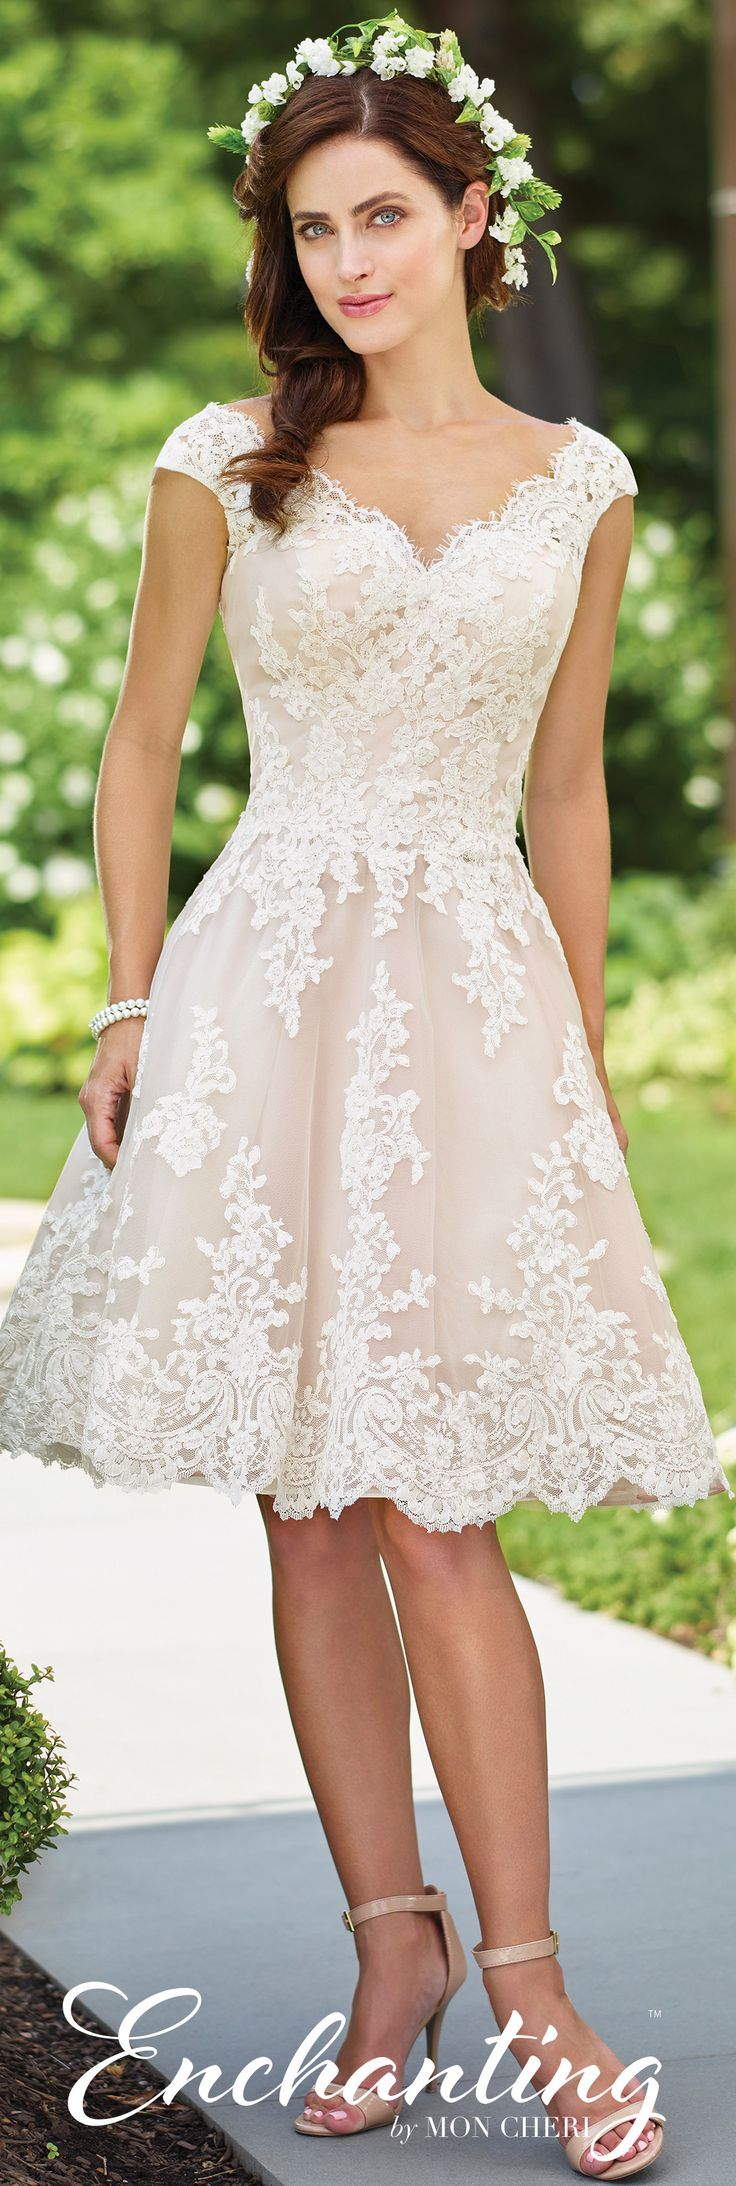 mon cheri bridal short ivory wedding dresses Enchanting by Mon Cheri Spring Wedding Gown Collection Style No lace